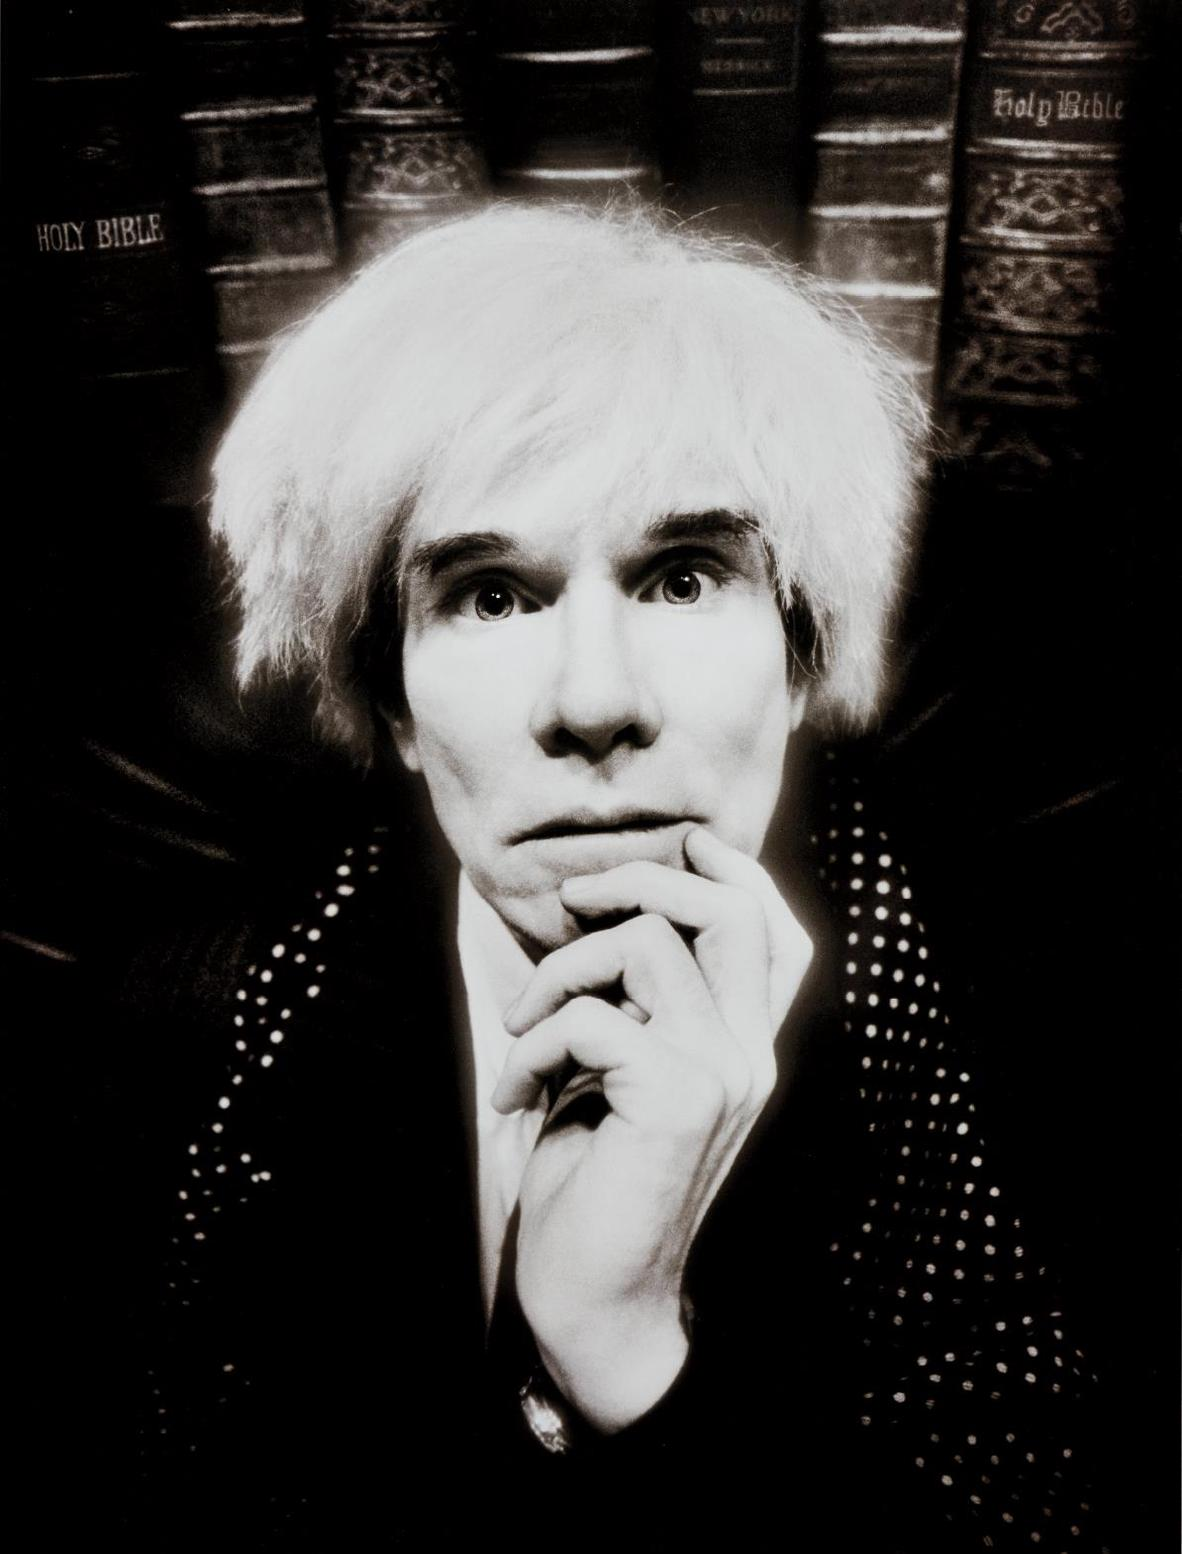 David LaChapelle-Andy Warhol: Last Sitting, November 22-1987